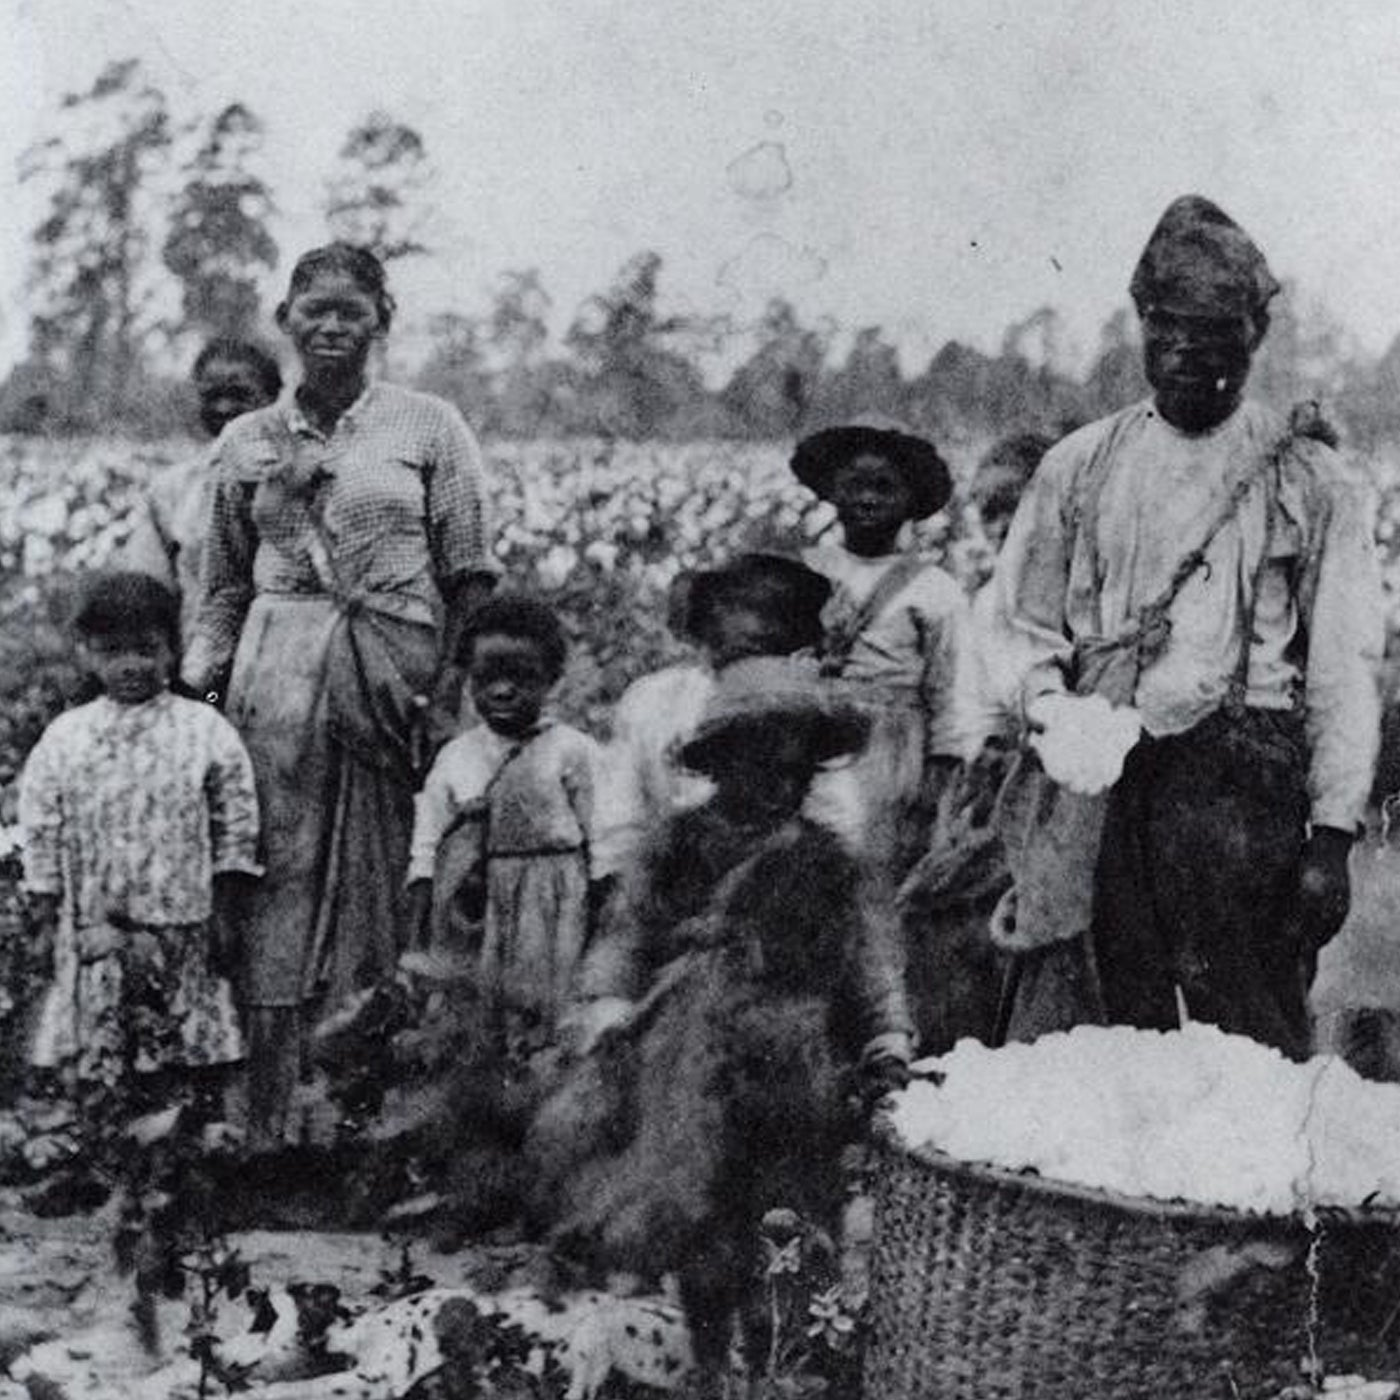 historical image of black slaves in a field